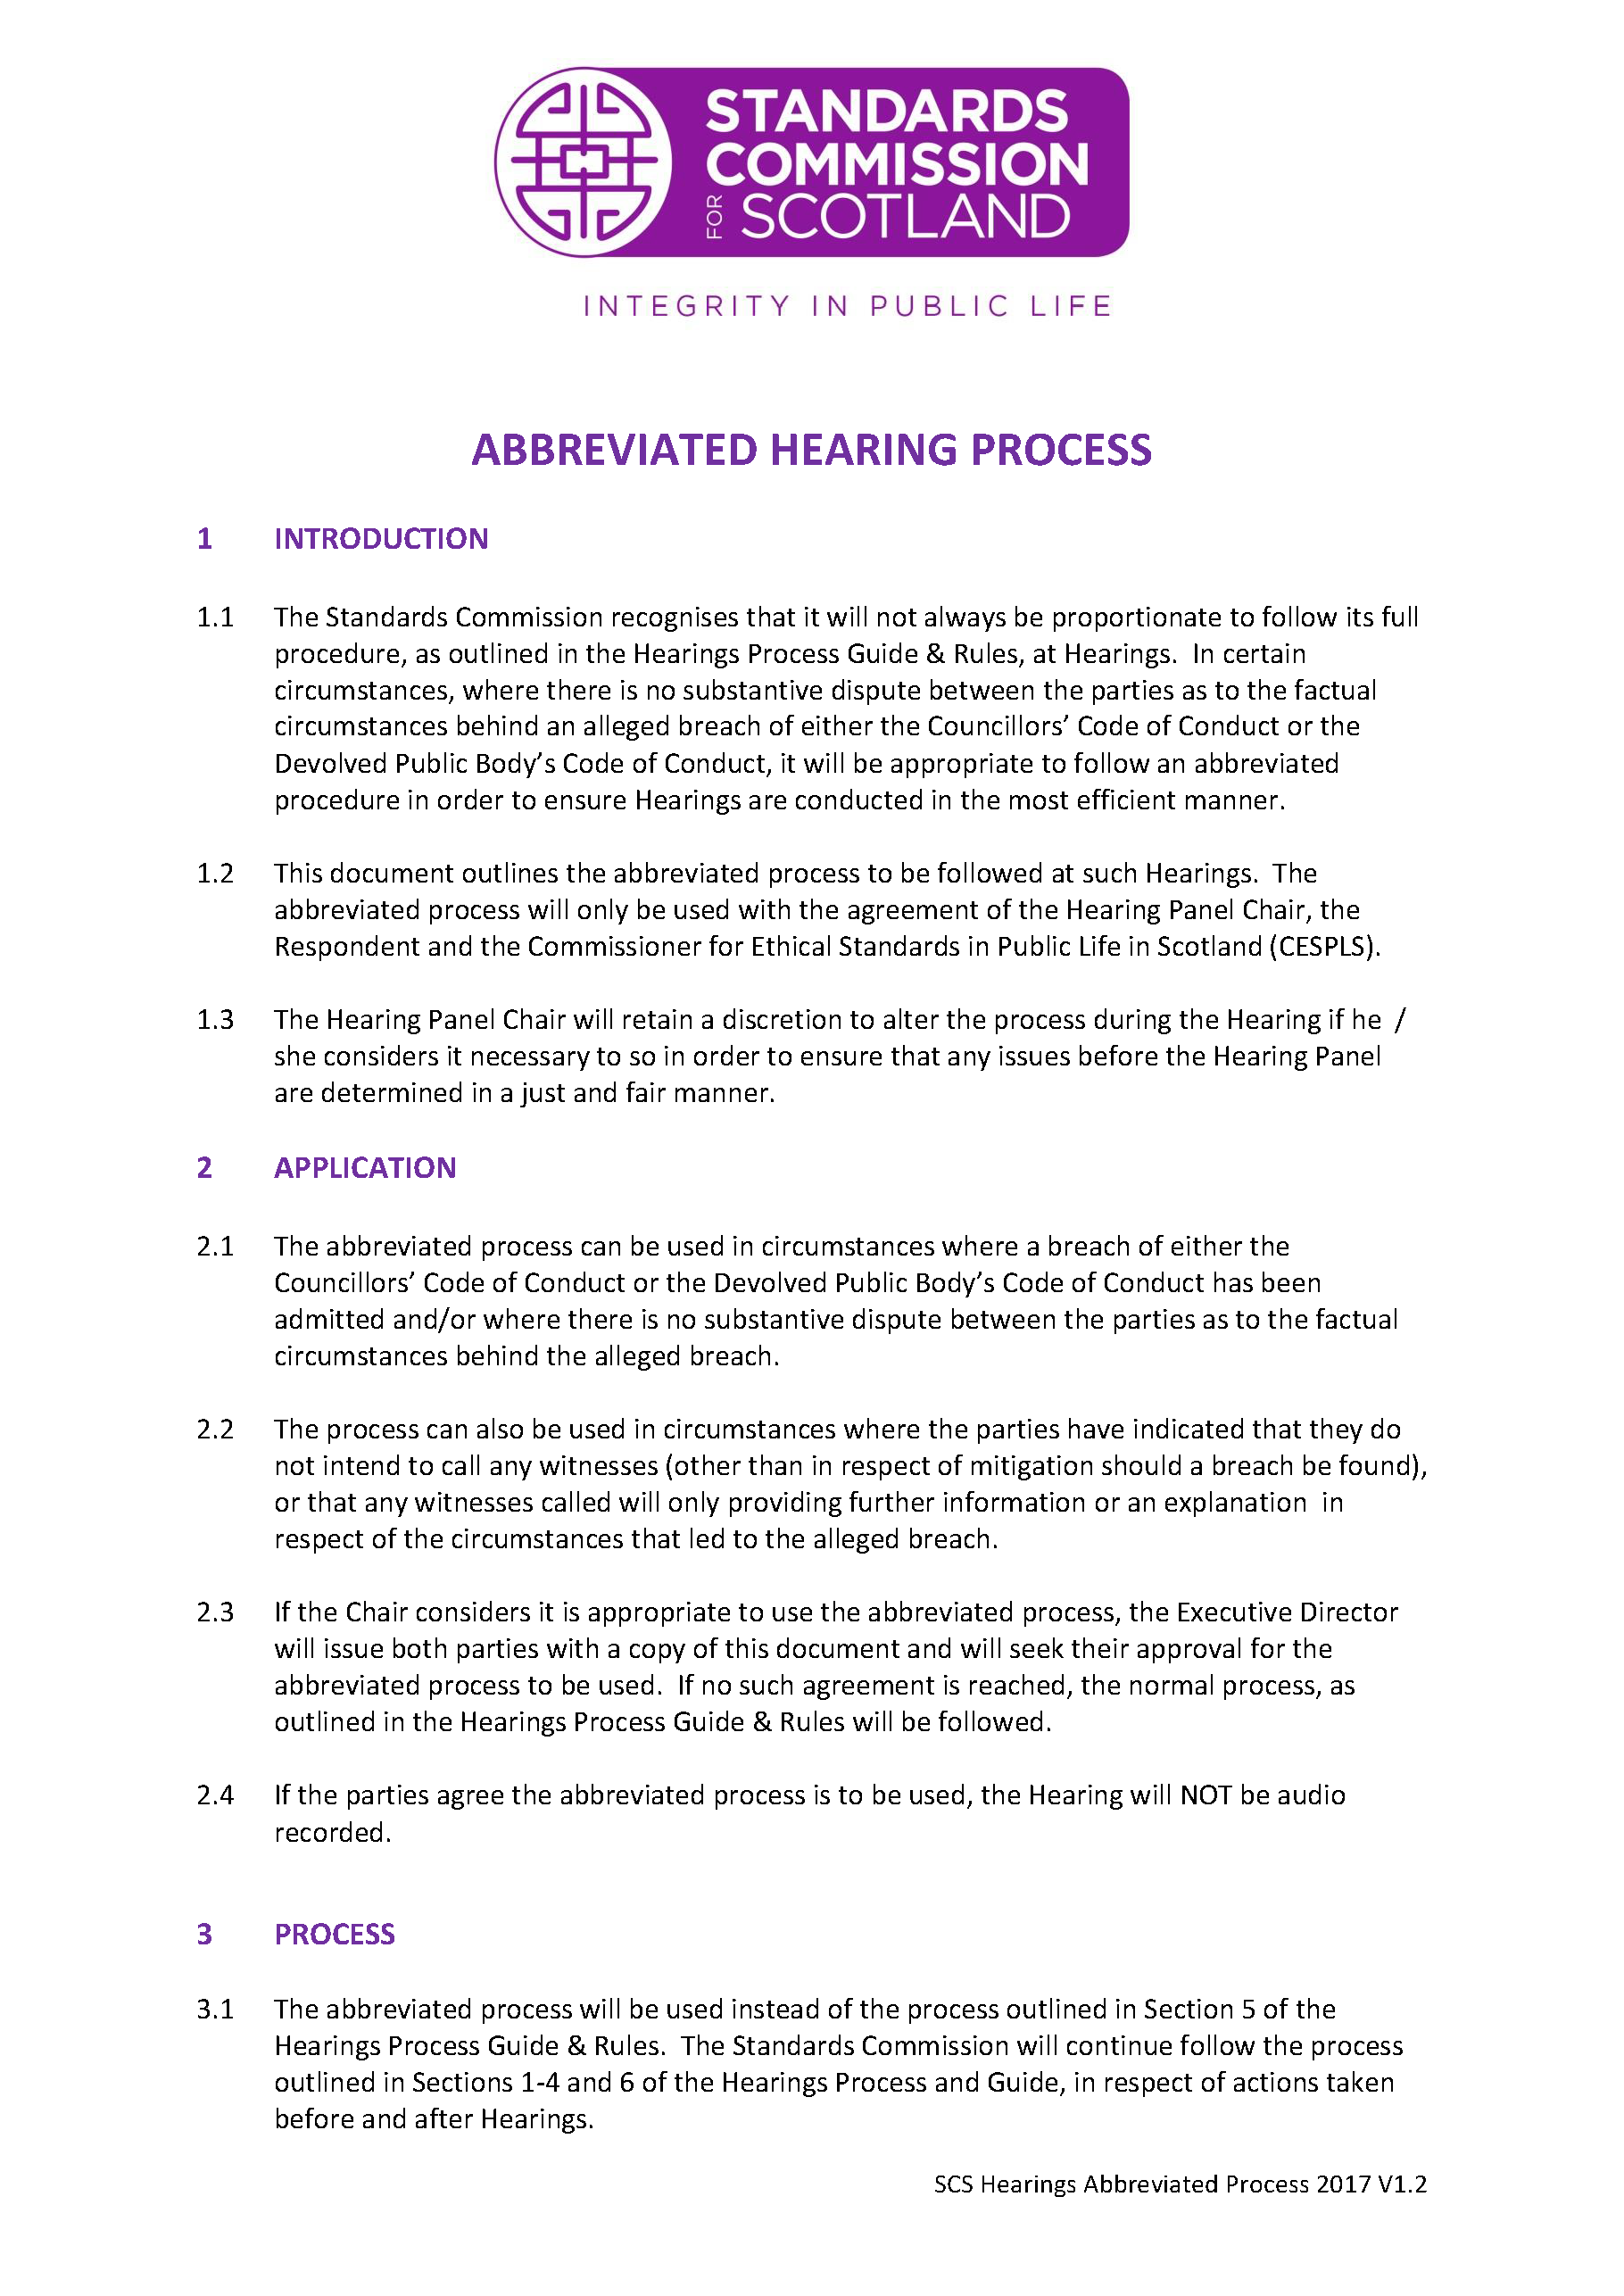 Abbreviated Hearing Process